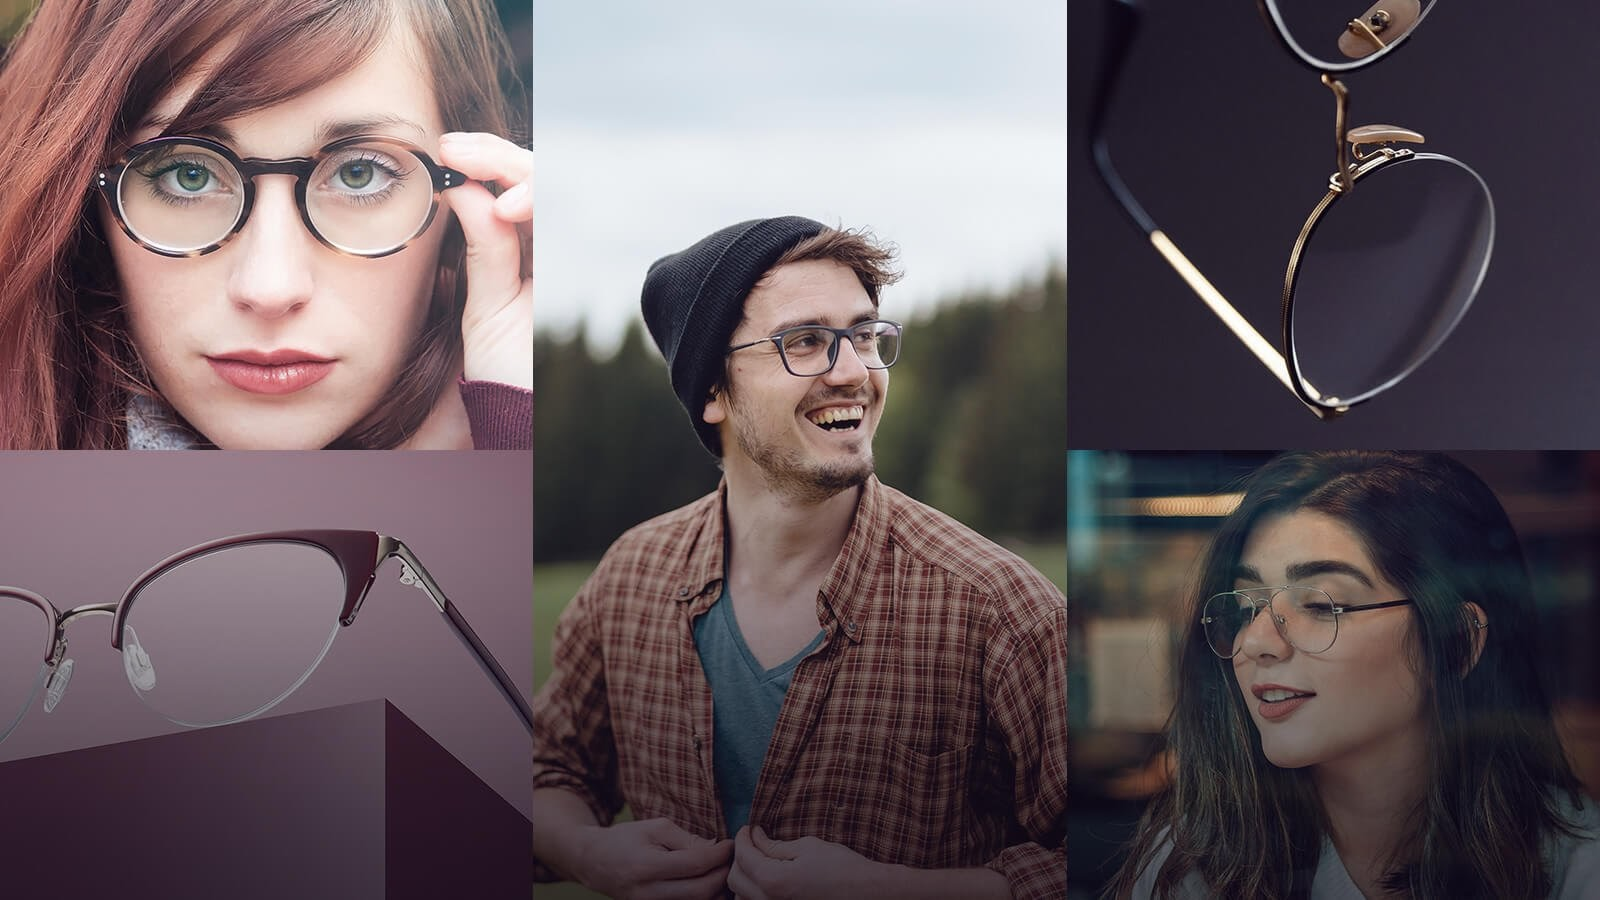 Want to know eyewear trends for 2022?